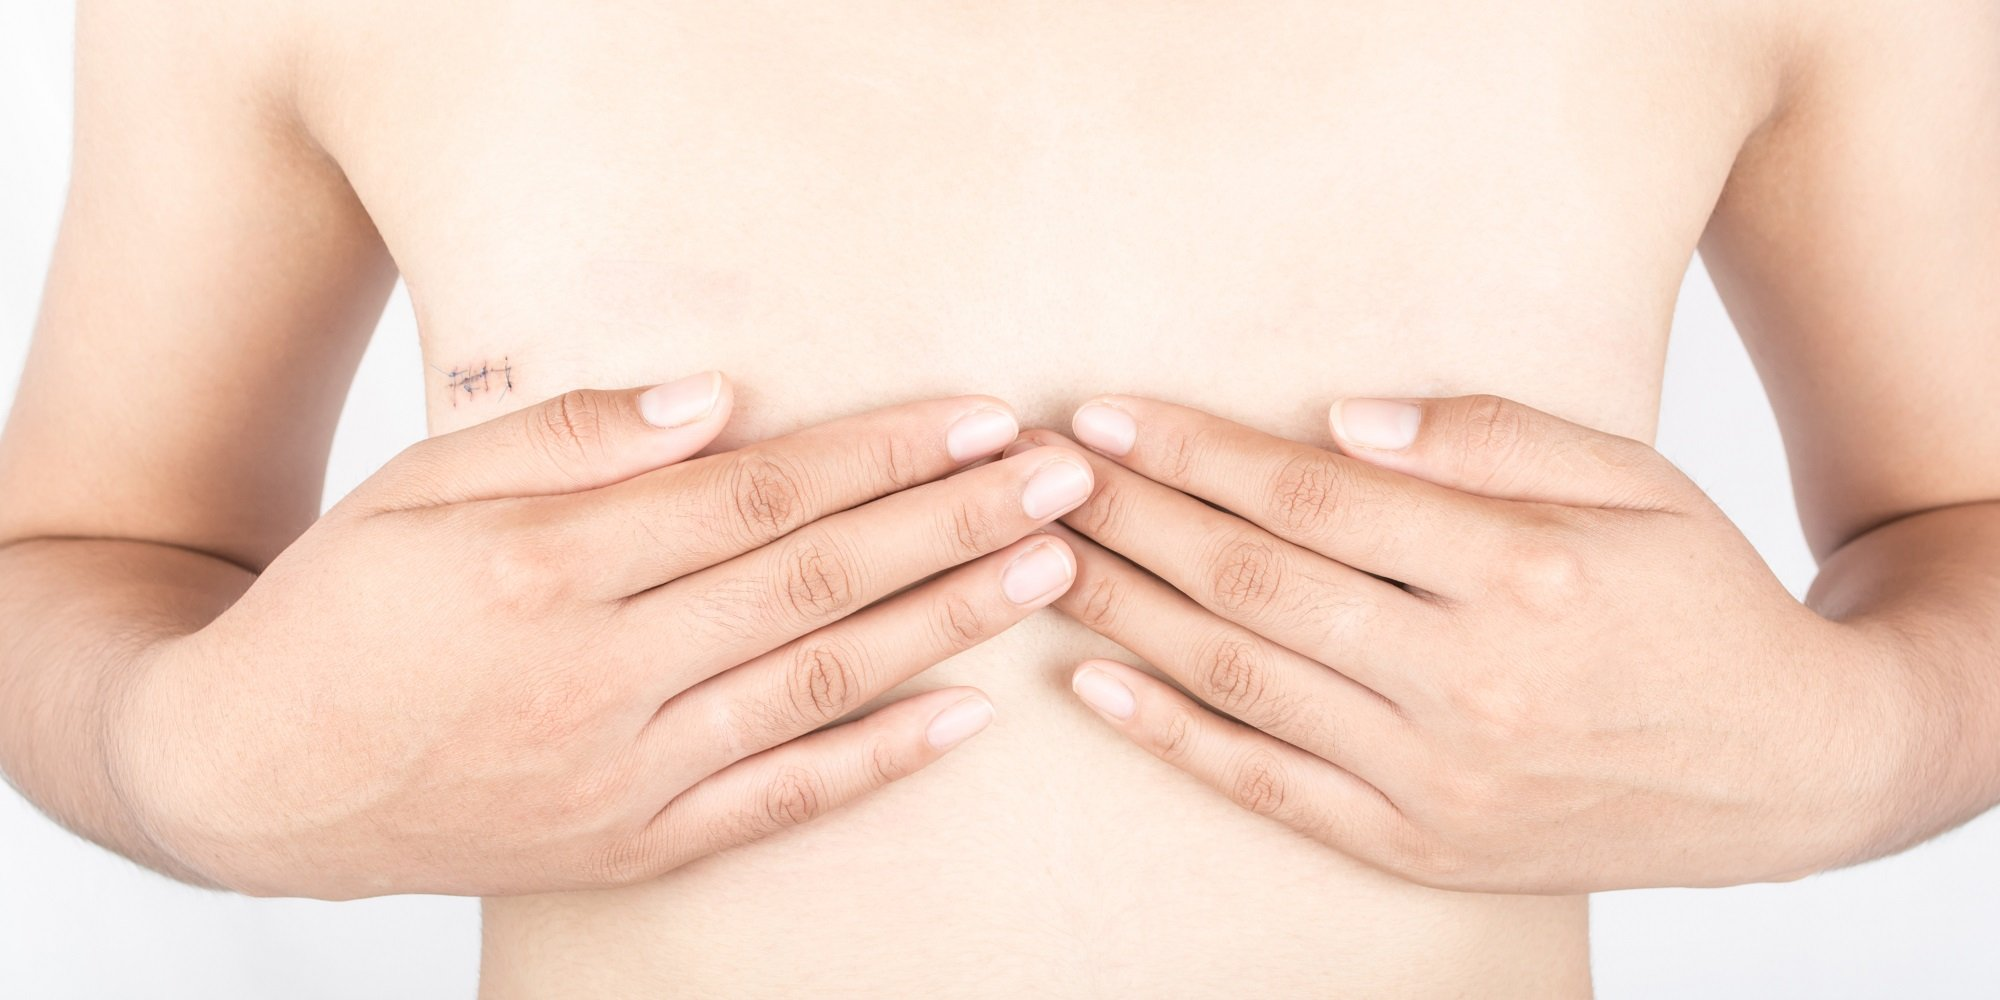 Choosing Breast Reconstruction After a Mastectomy